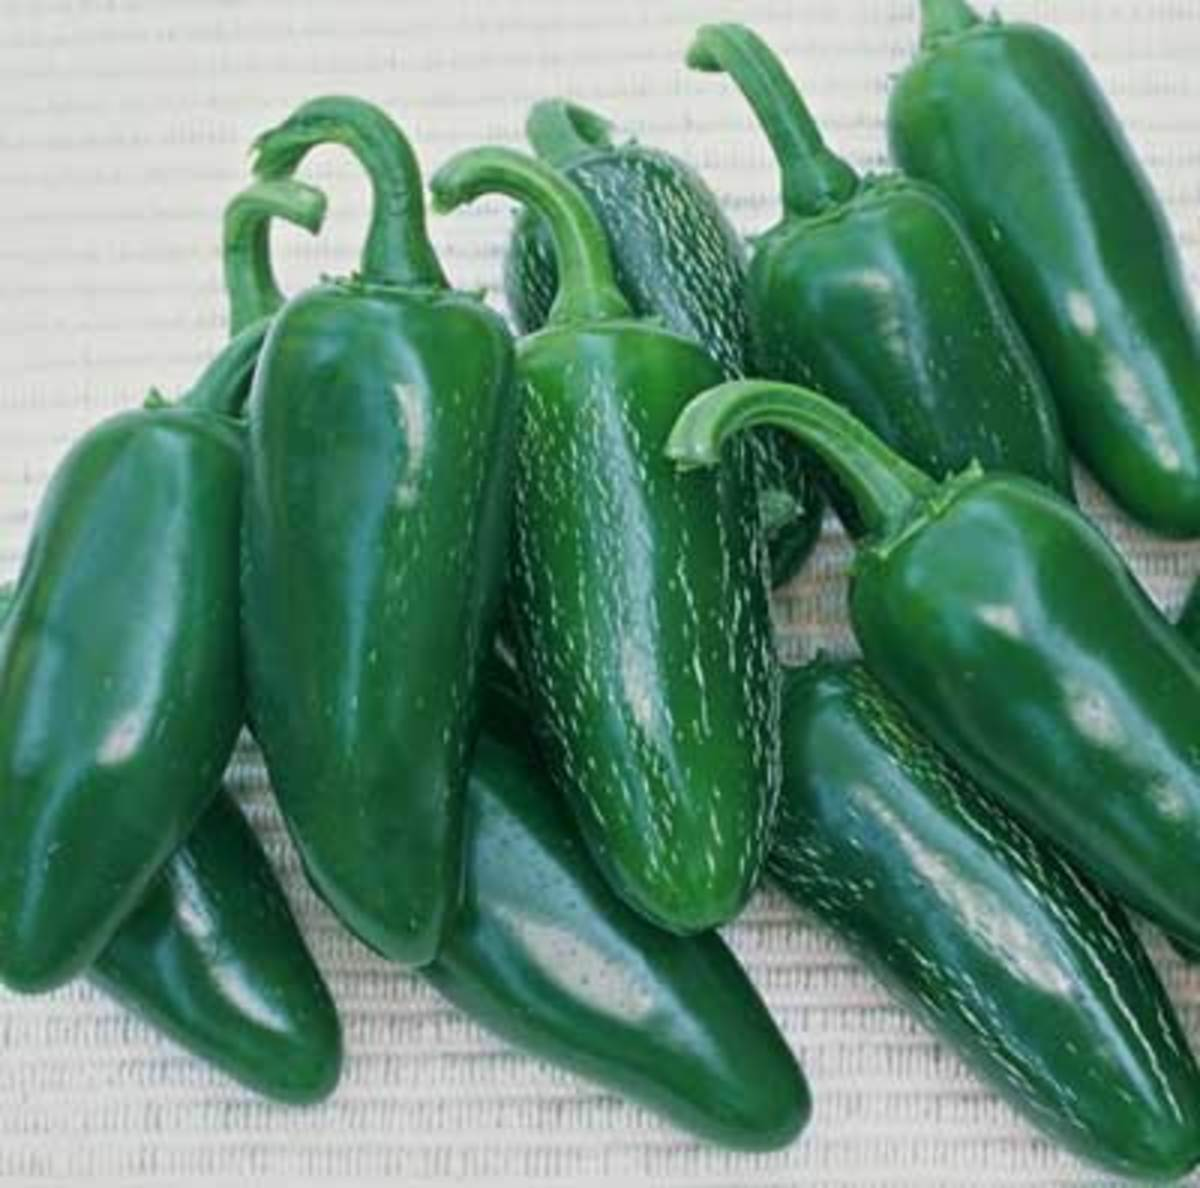 Jalapeno - Fiery, thick-walled peppers grow 3 in. long and 1-1/2 inches wide, with rounded tips. Dark green at first, then turning red. Good for fresh use or pickling; famous for nachos and other Tex-Mex dishes.